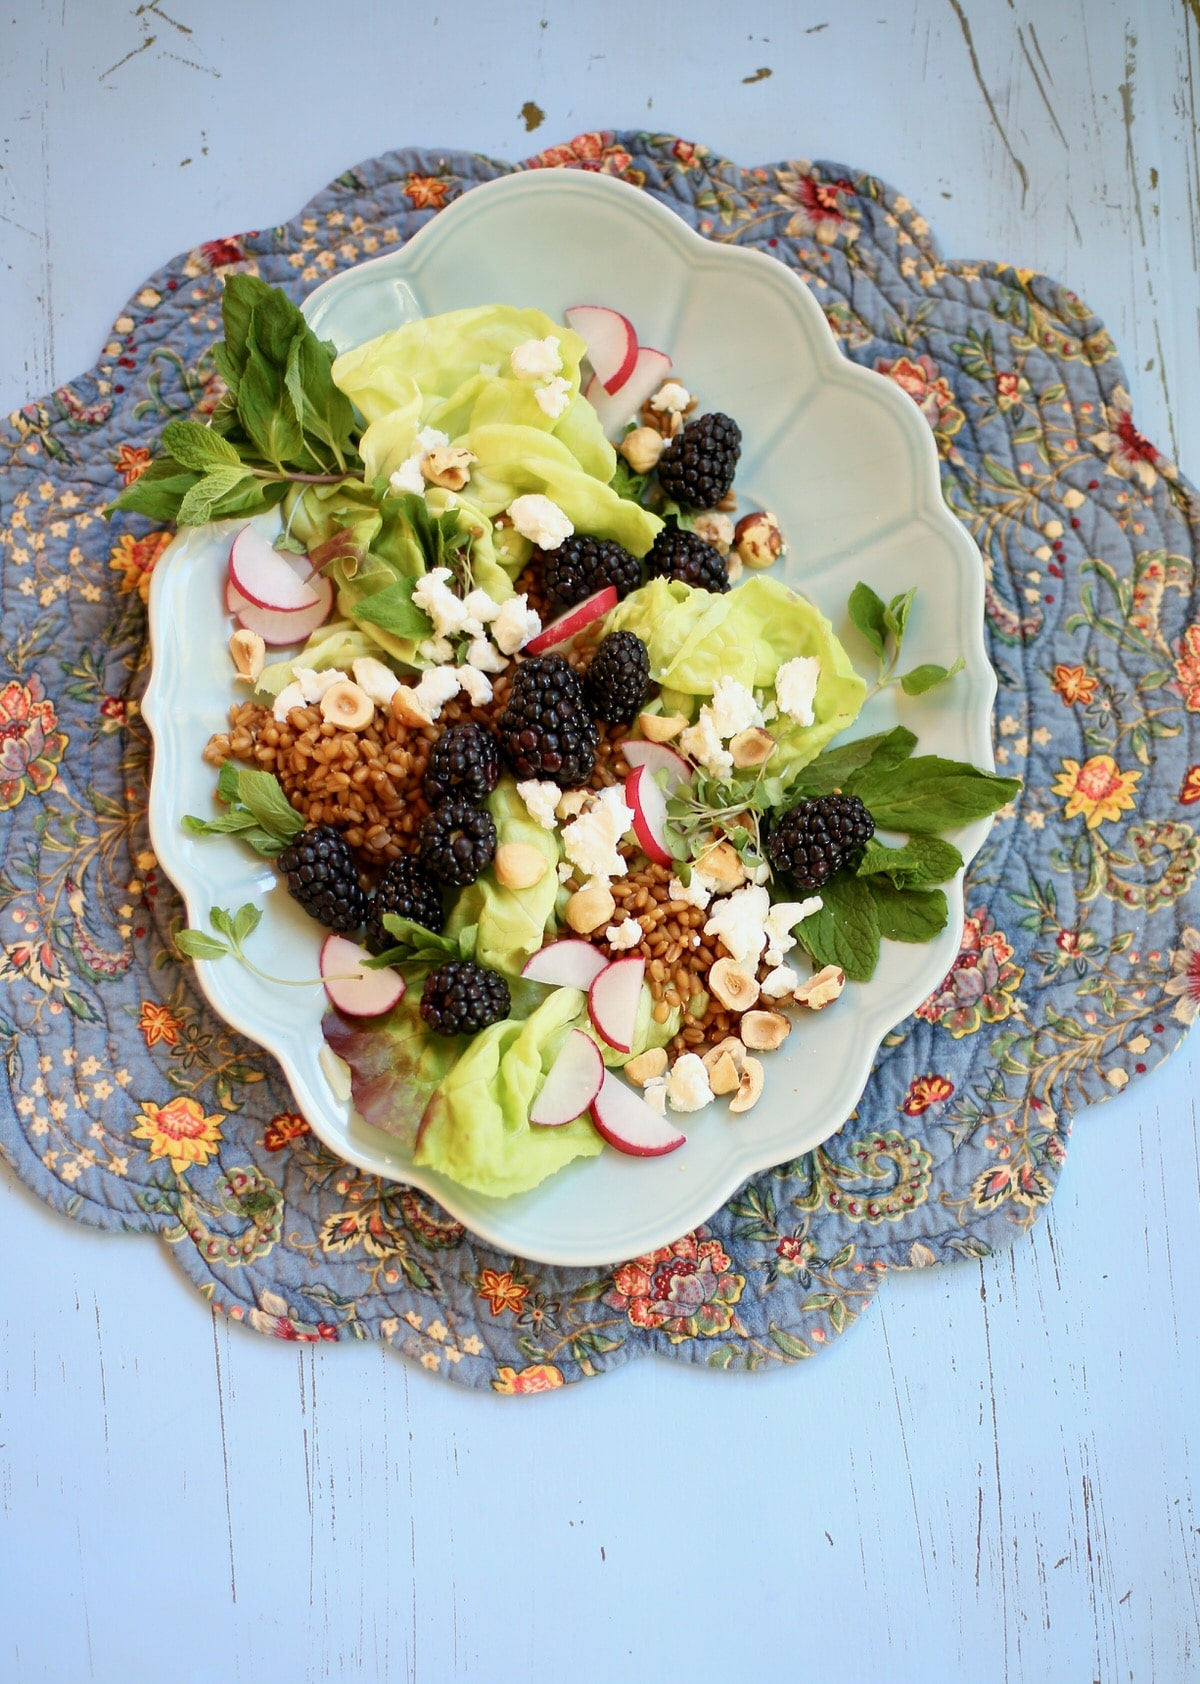 Long blue platter of salad made of goat cheese, blackberries, hazelnuts, radish and mint on a blue table